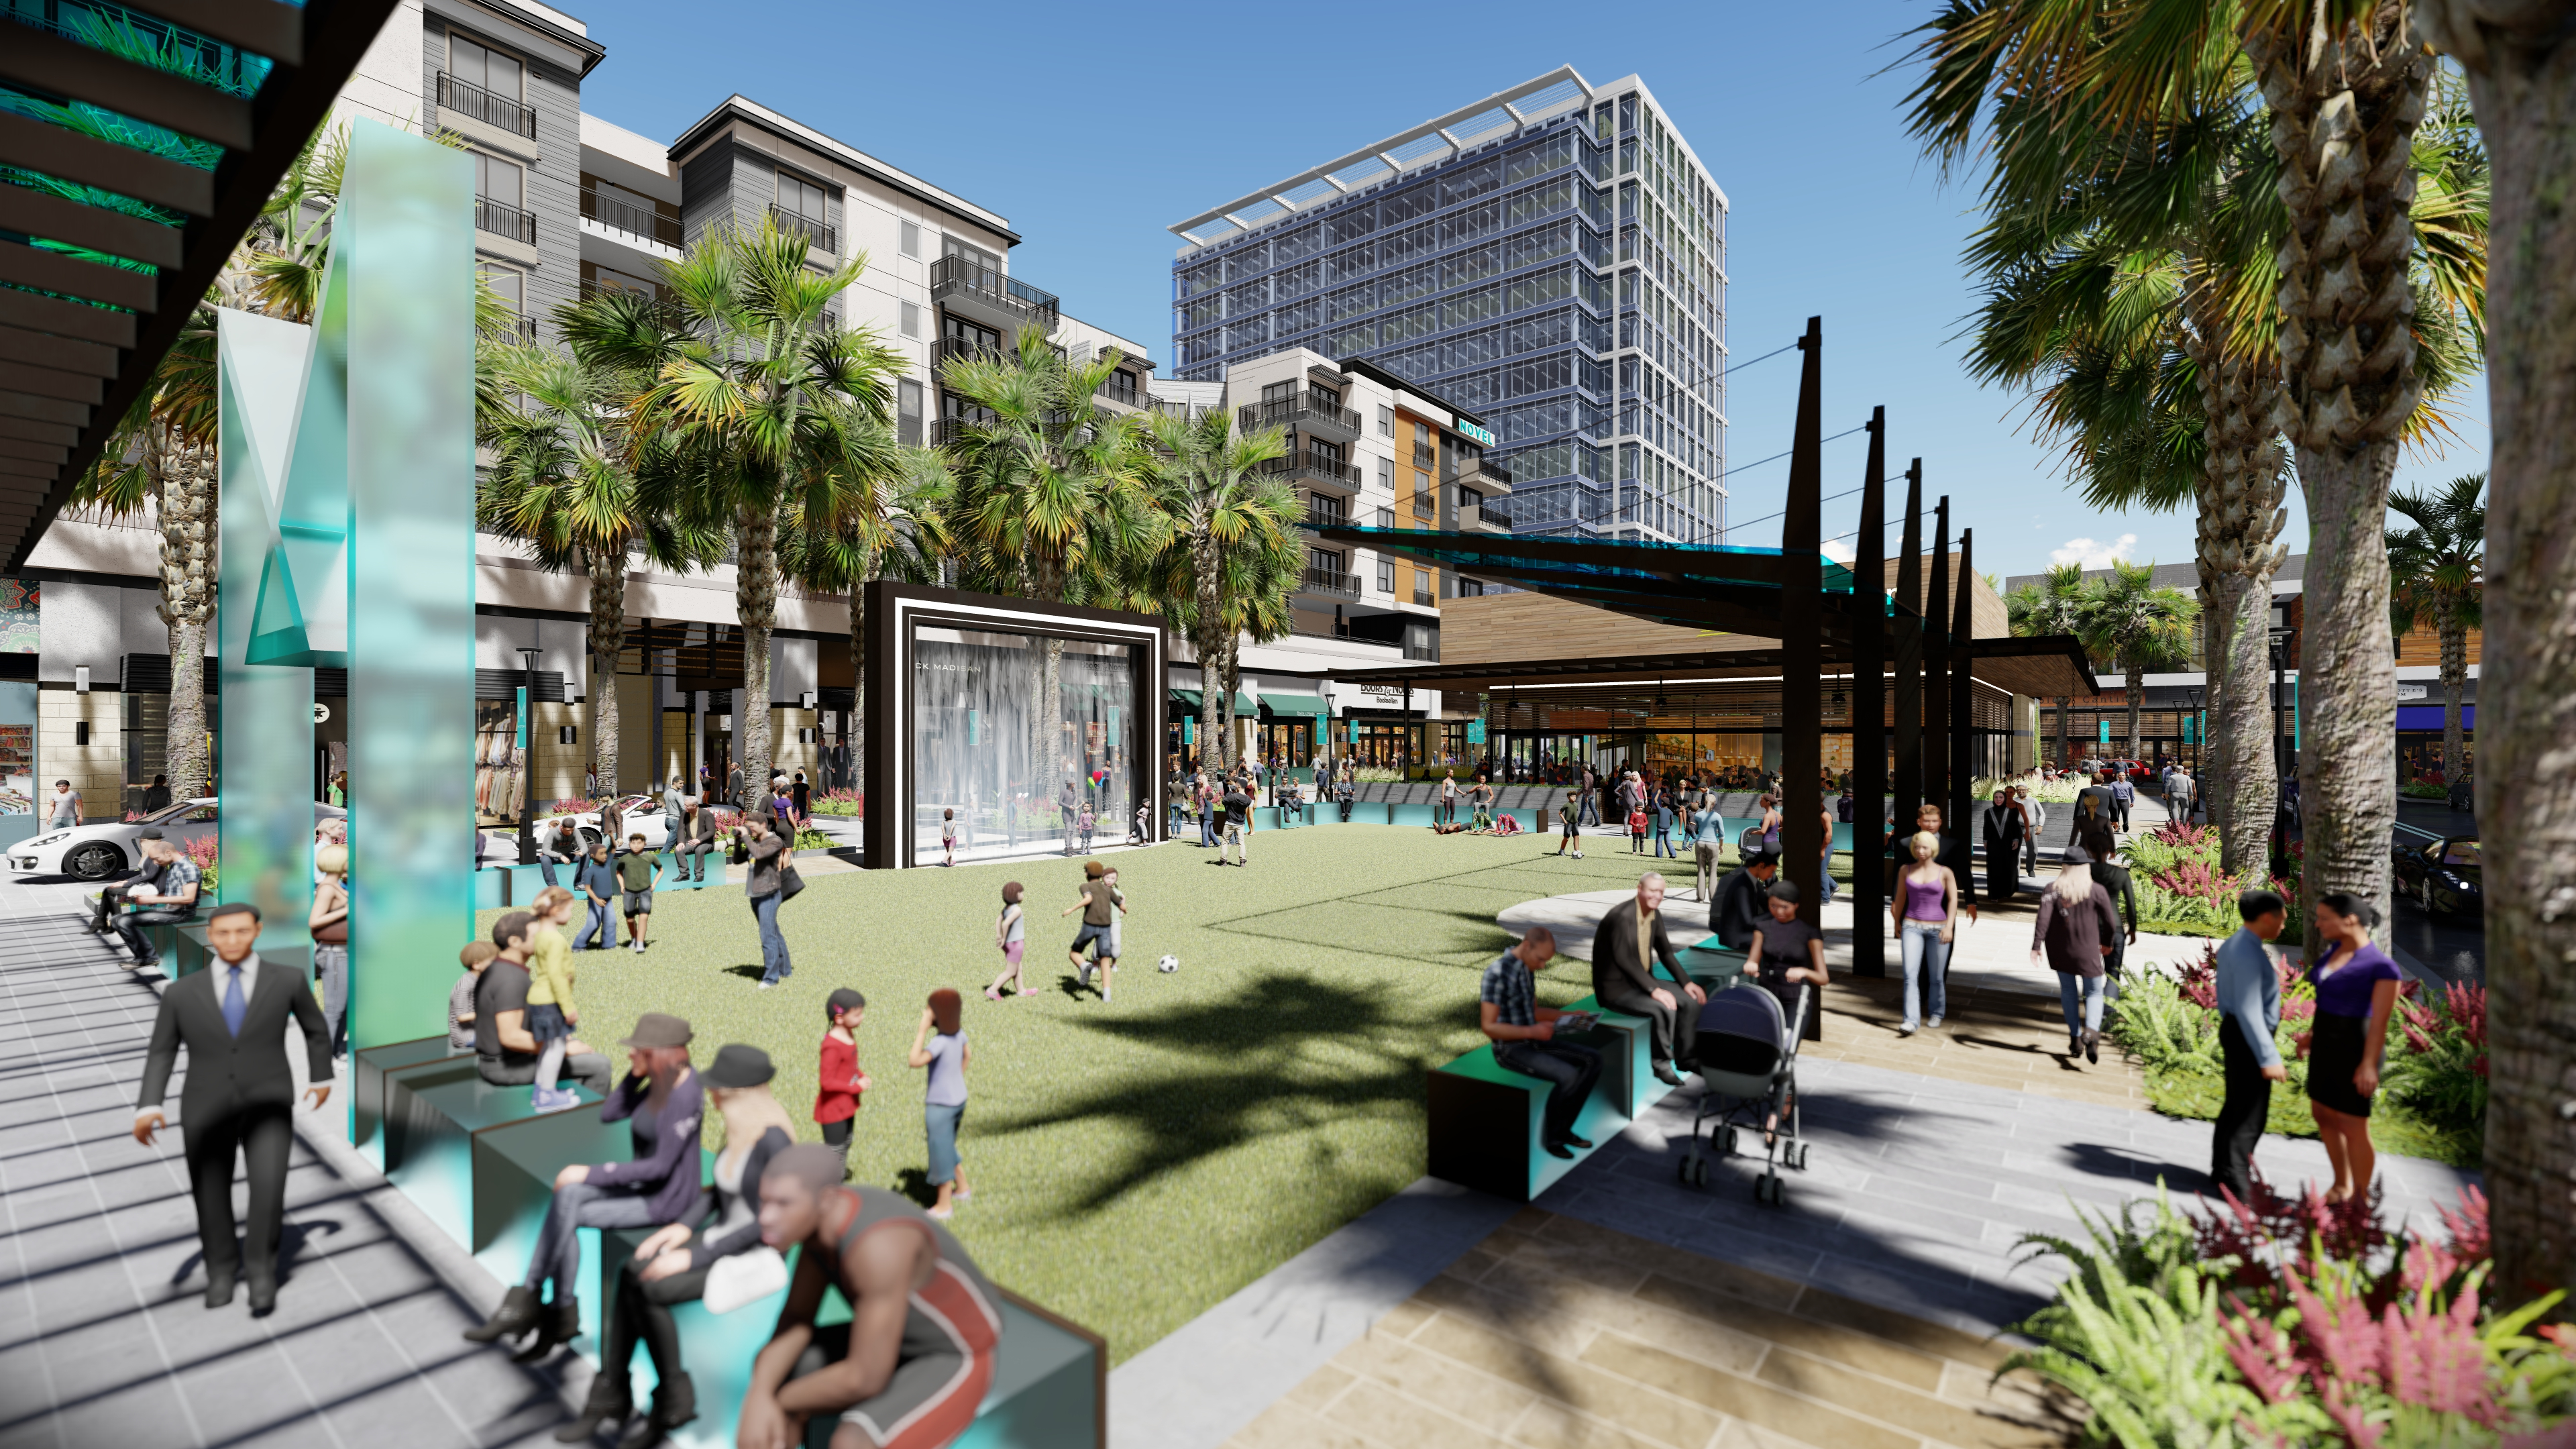 Midtown Tampa development first of its kind for the city